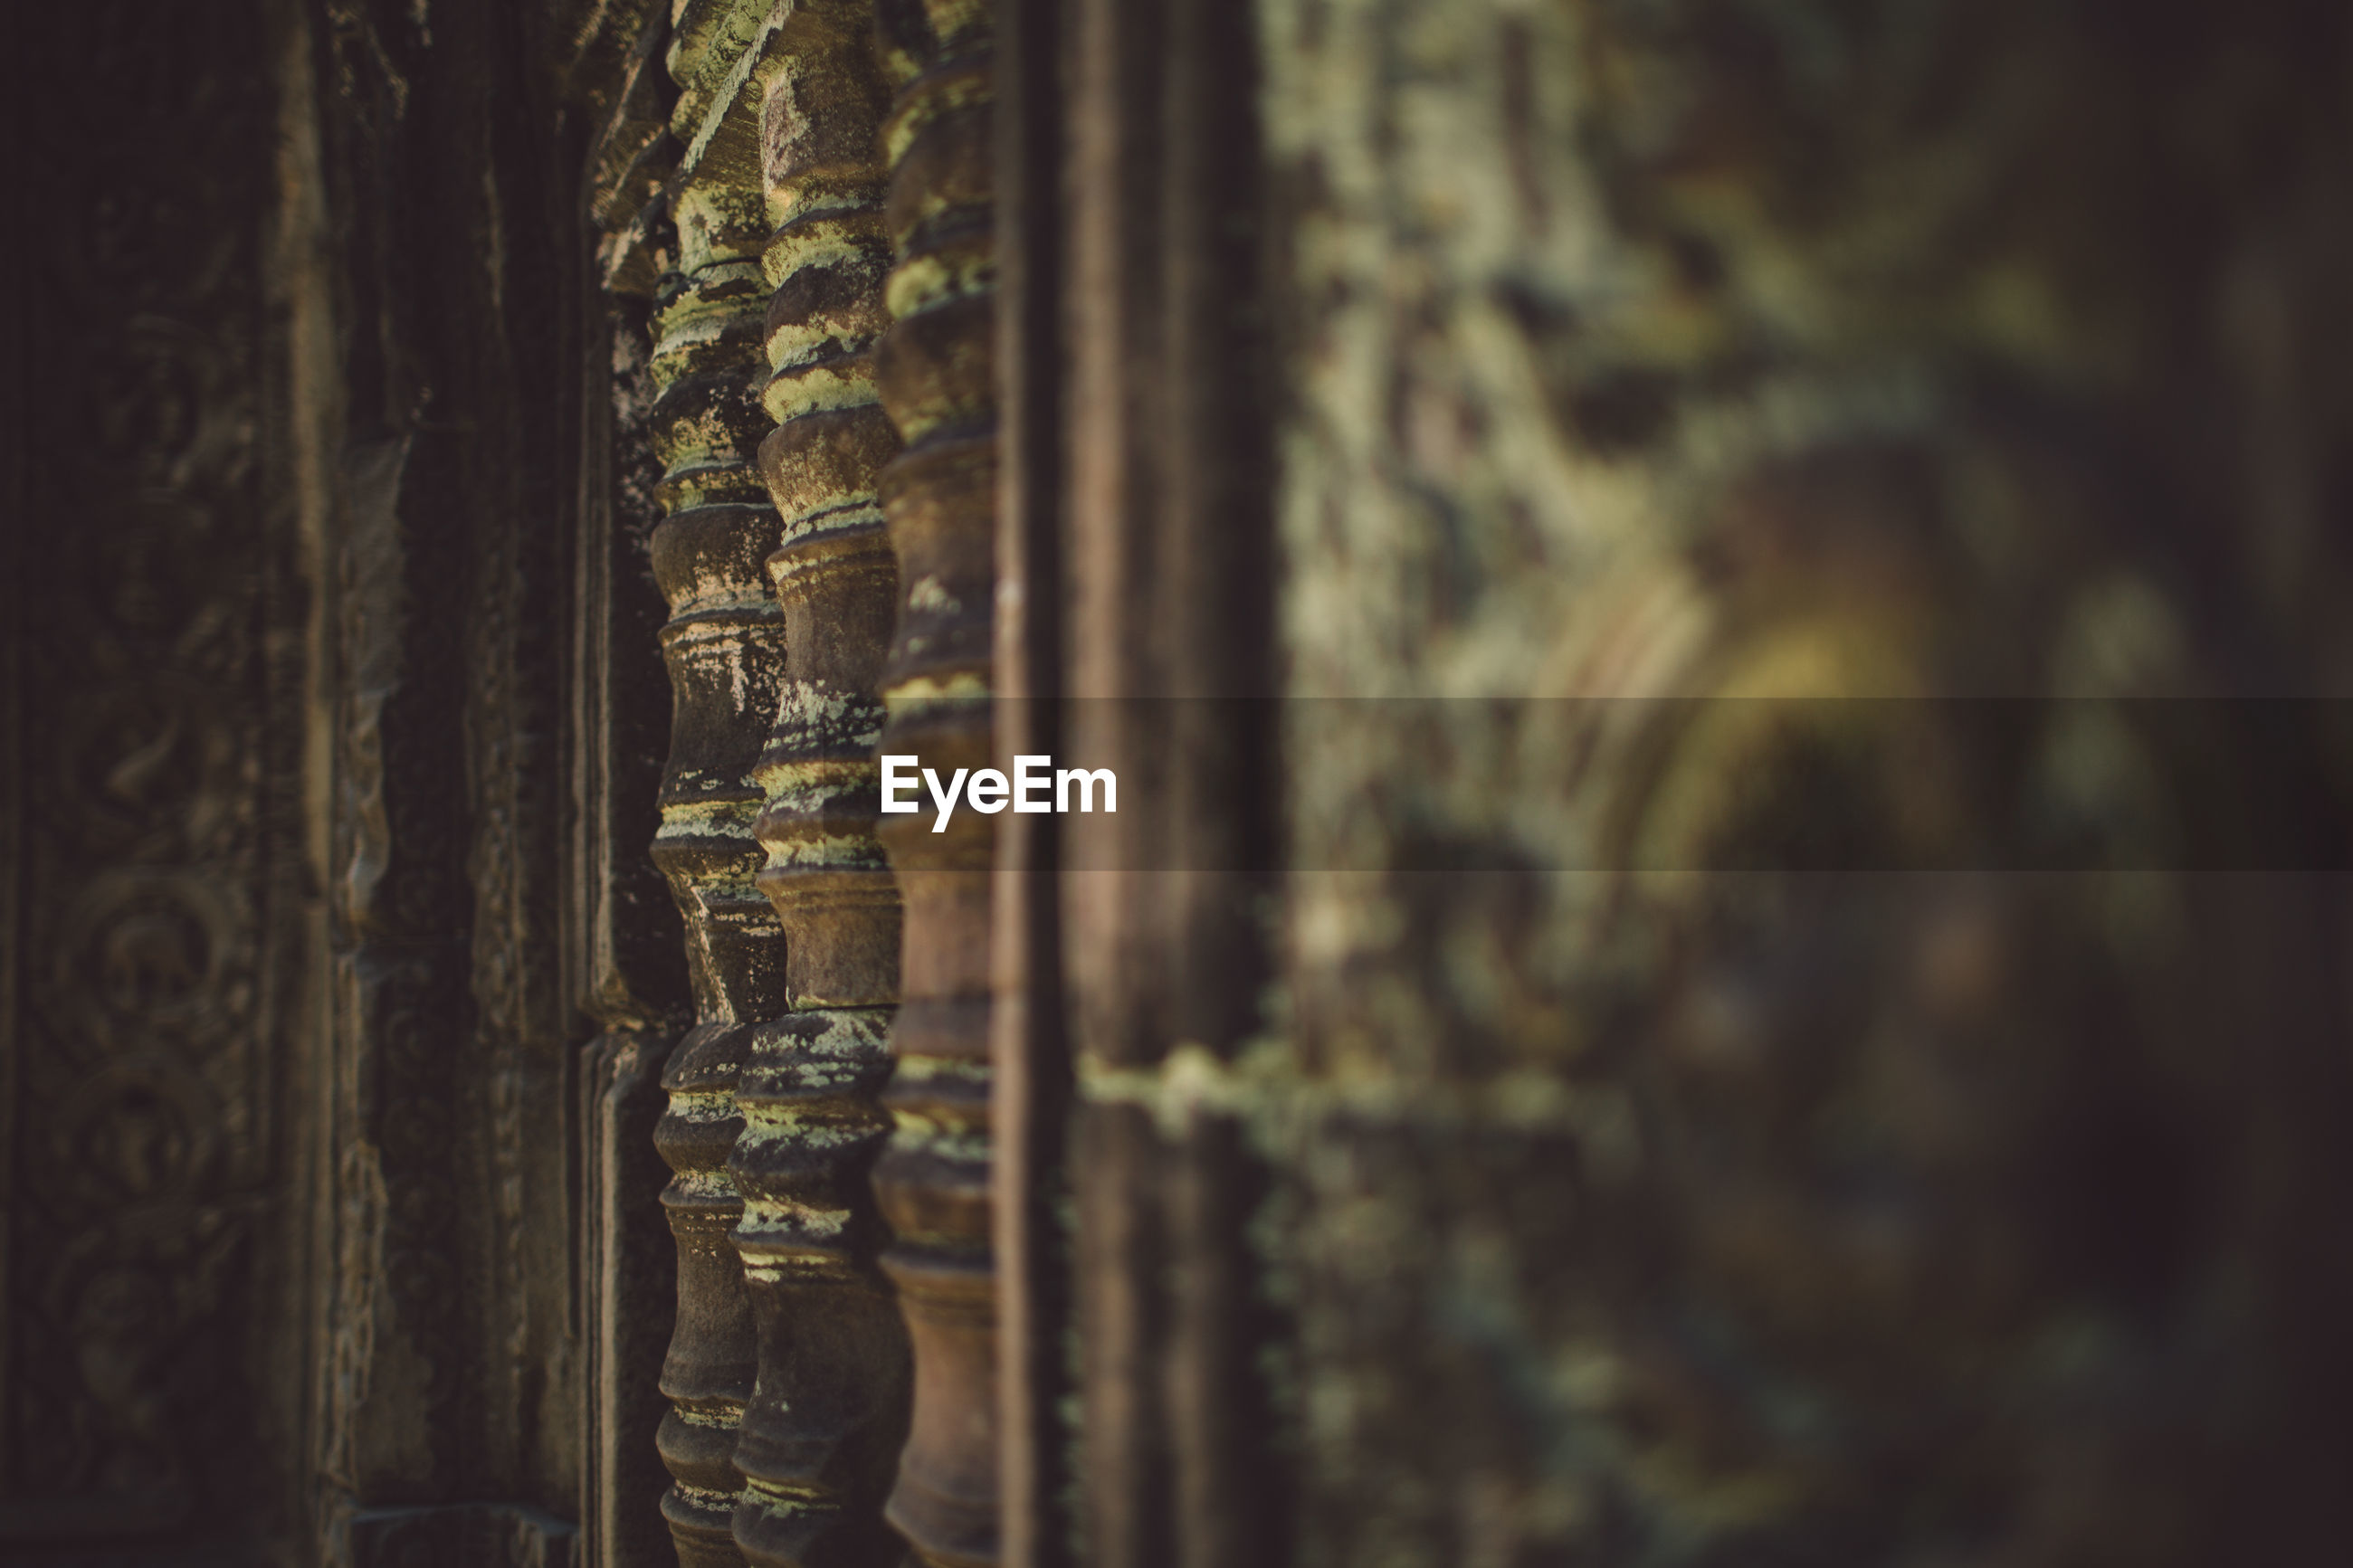 selective focus, close-up, no people, wood - material, old, textured, weathered, pattern, tree, day, brown, tree trunk, backgrounds, full frame, nature, indoors, built structure, architecture, trunk